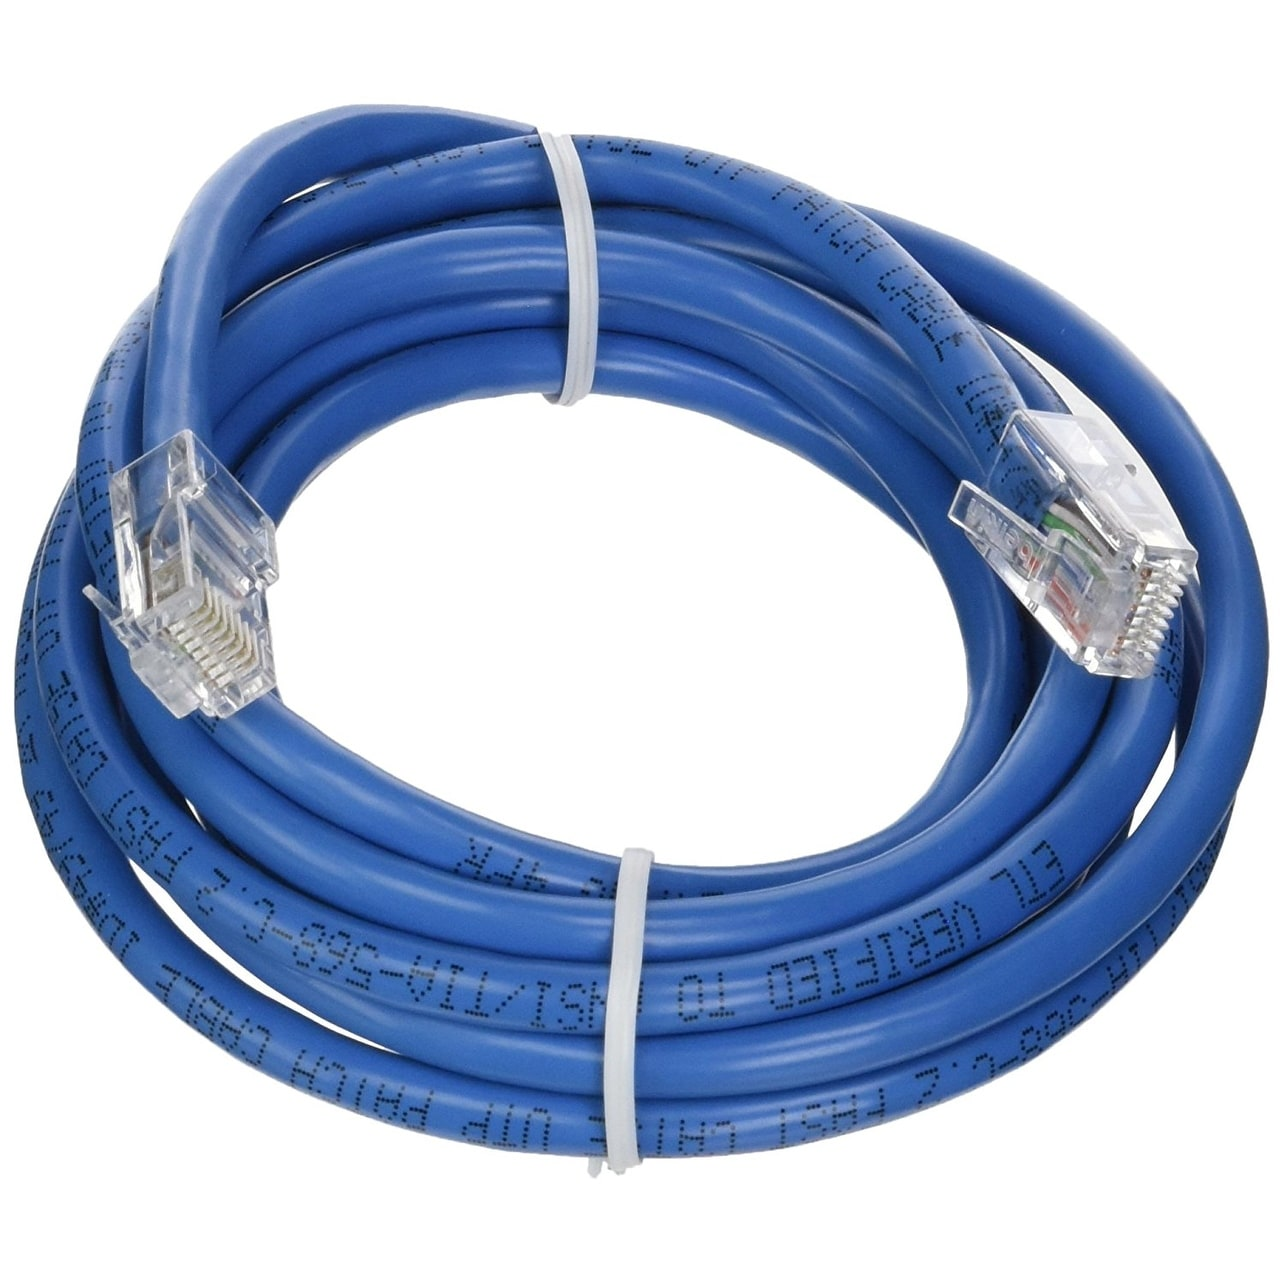 Shop Belkin A3l781 07 Blu 7 Cat5e Snagless Patch Cable Blue Cat 5e Bootless Cables Black Ethernet 6 Free Shipping On Orders Over 45 20524877